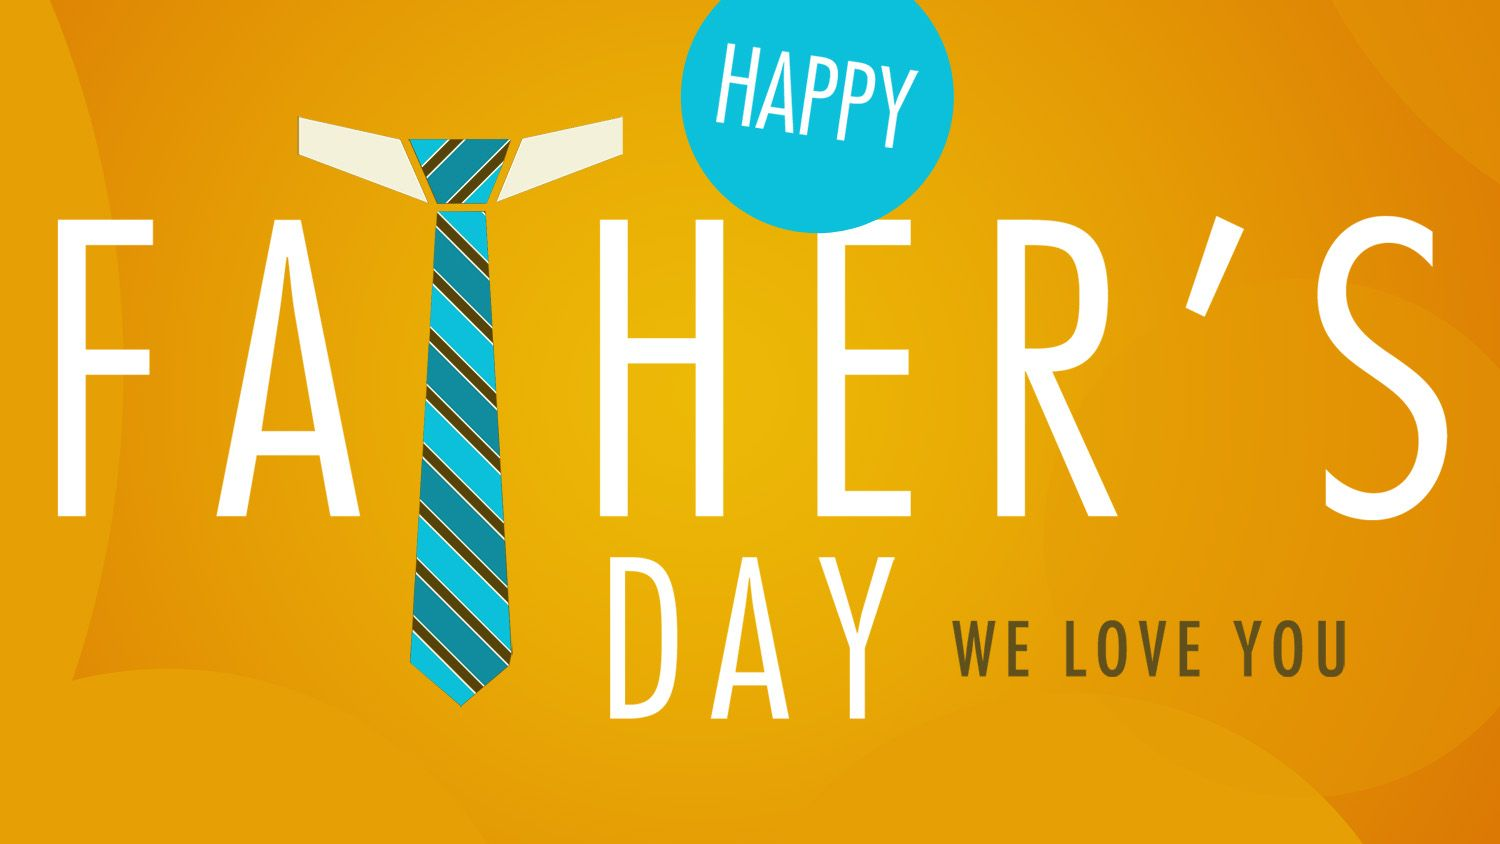 About Happy Fathers Day Sayings